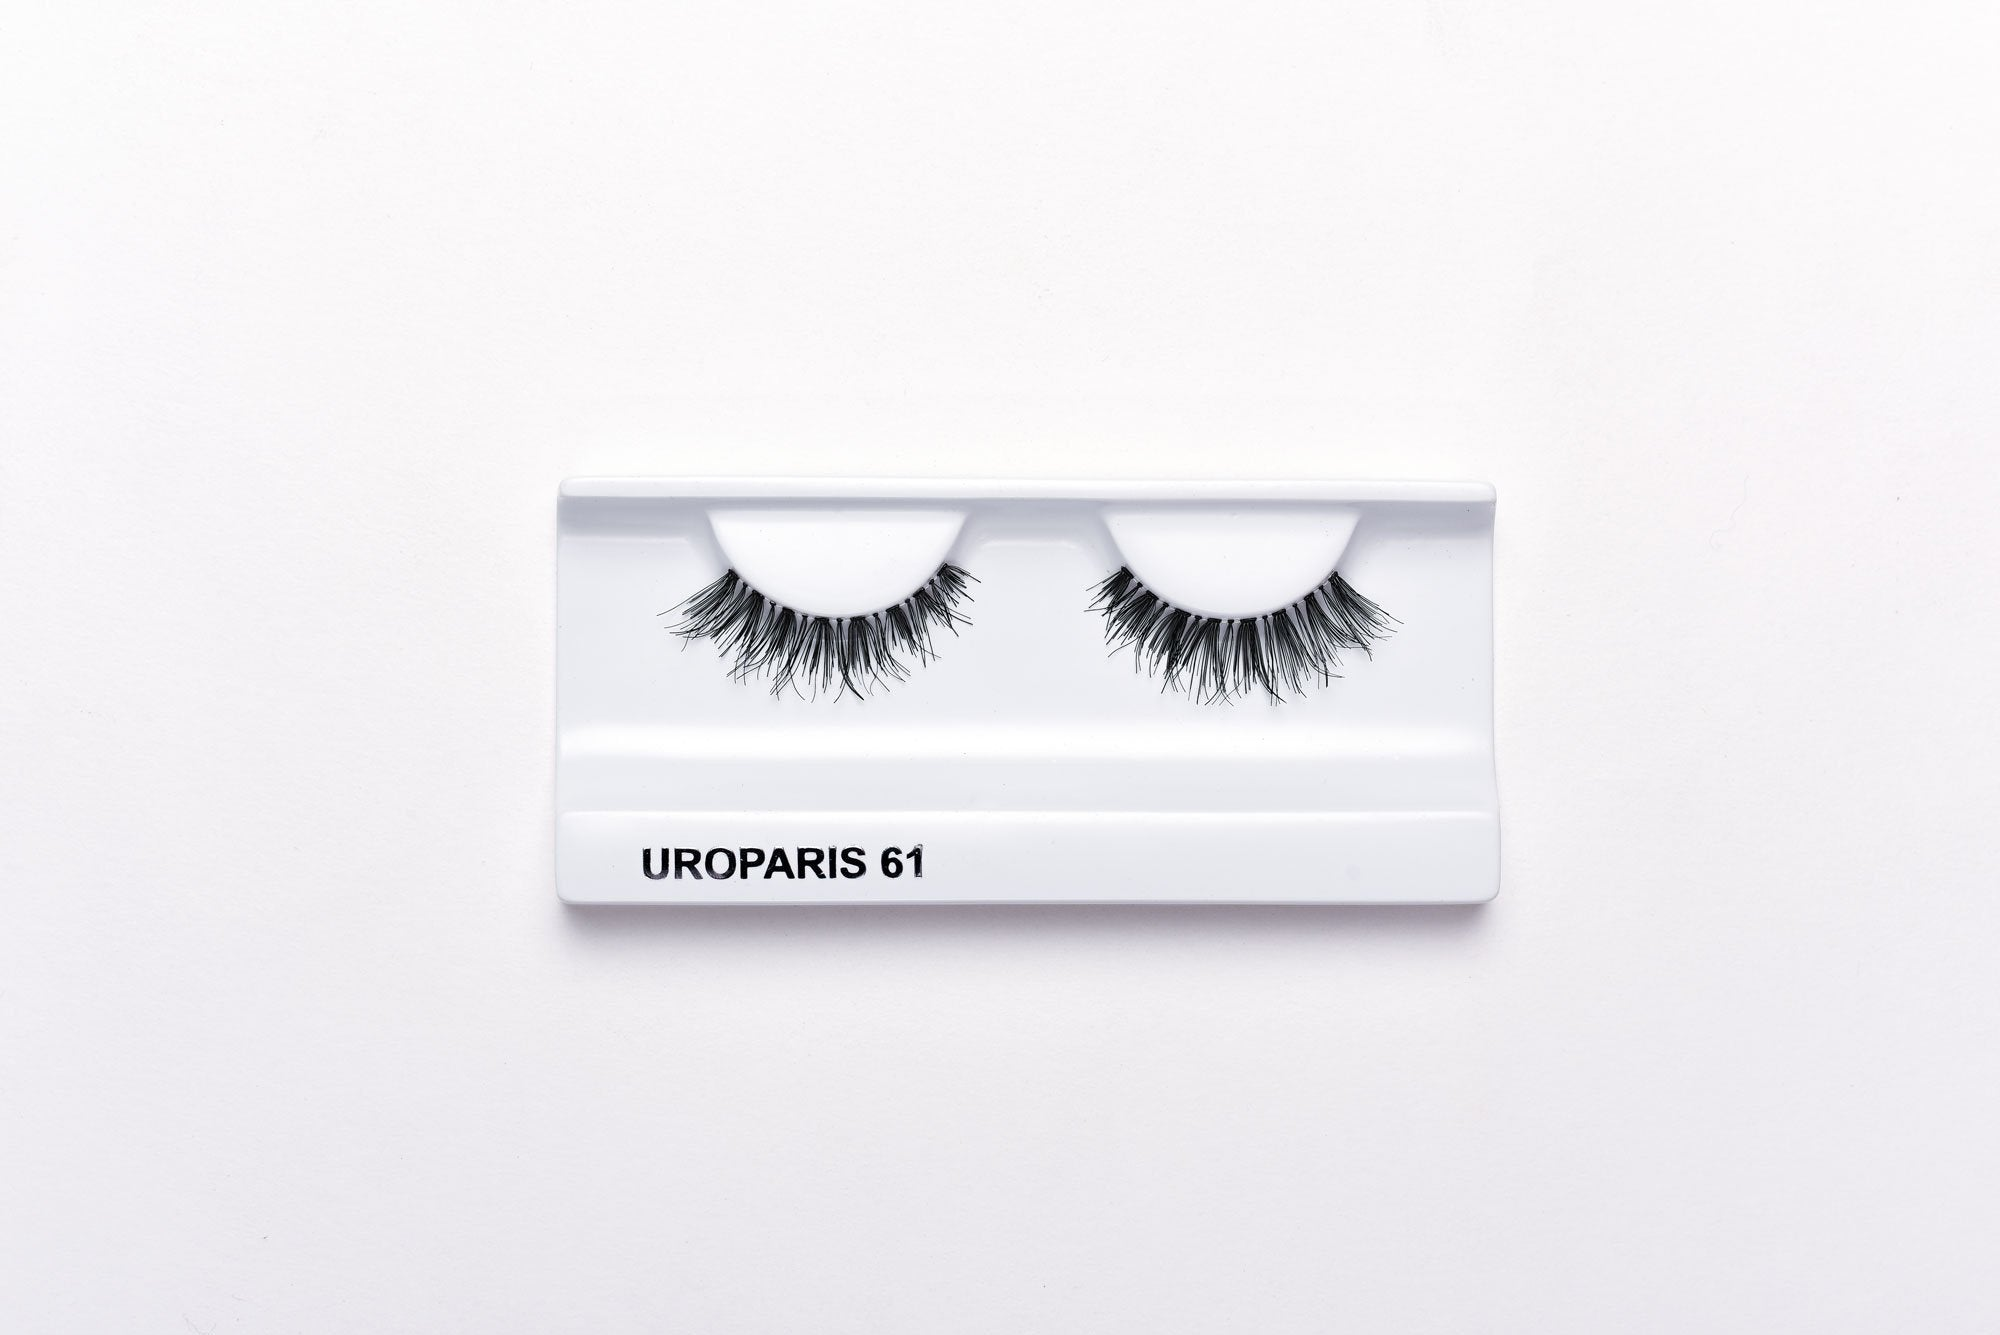 Uroparis Eyelashes 61